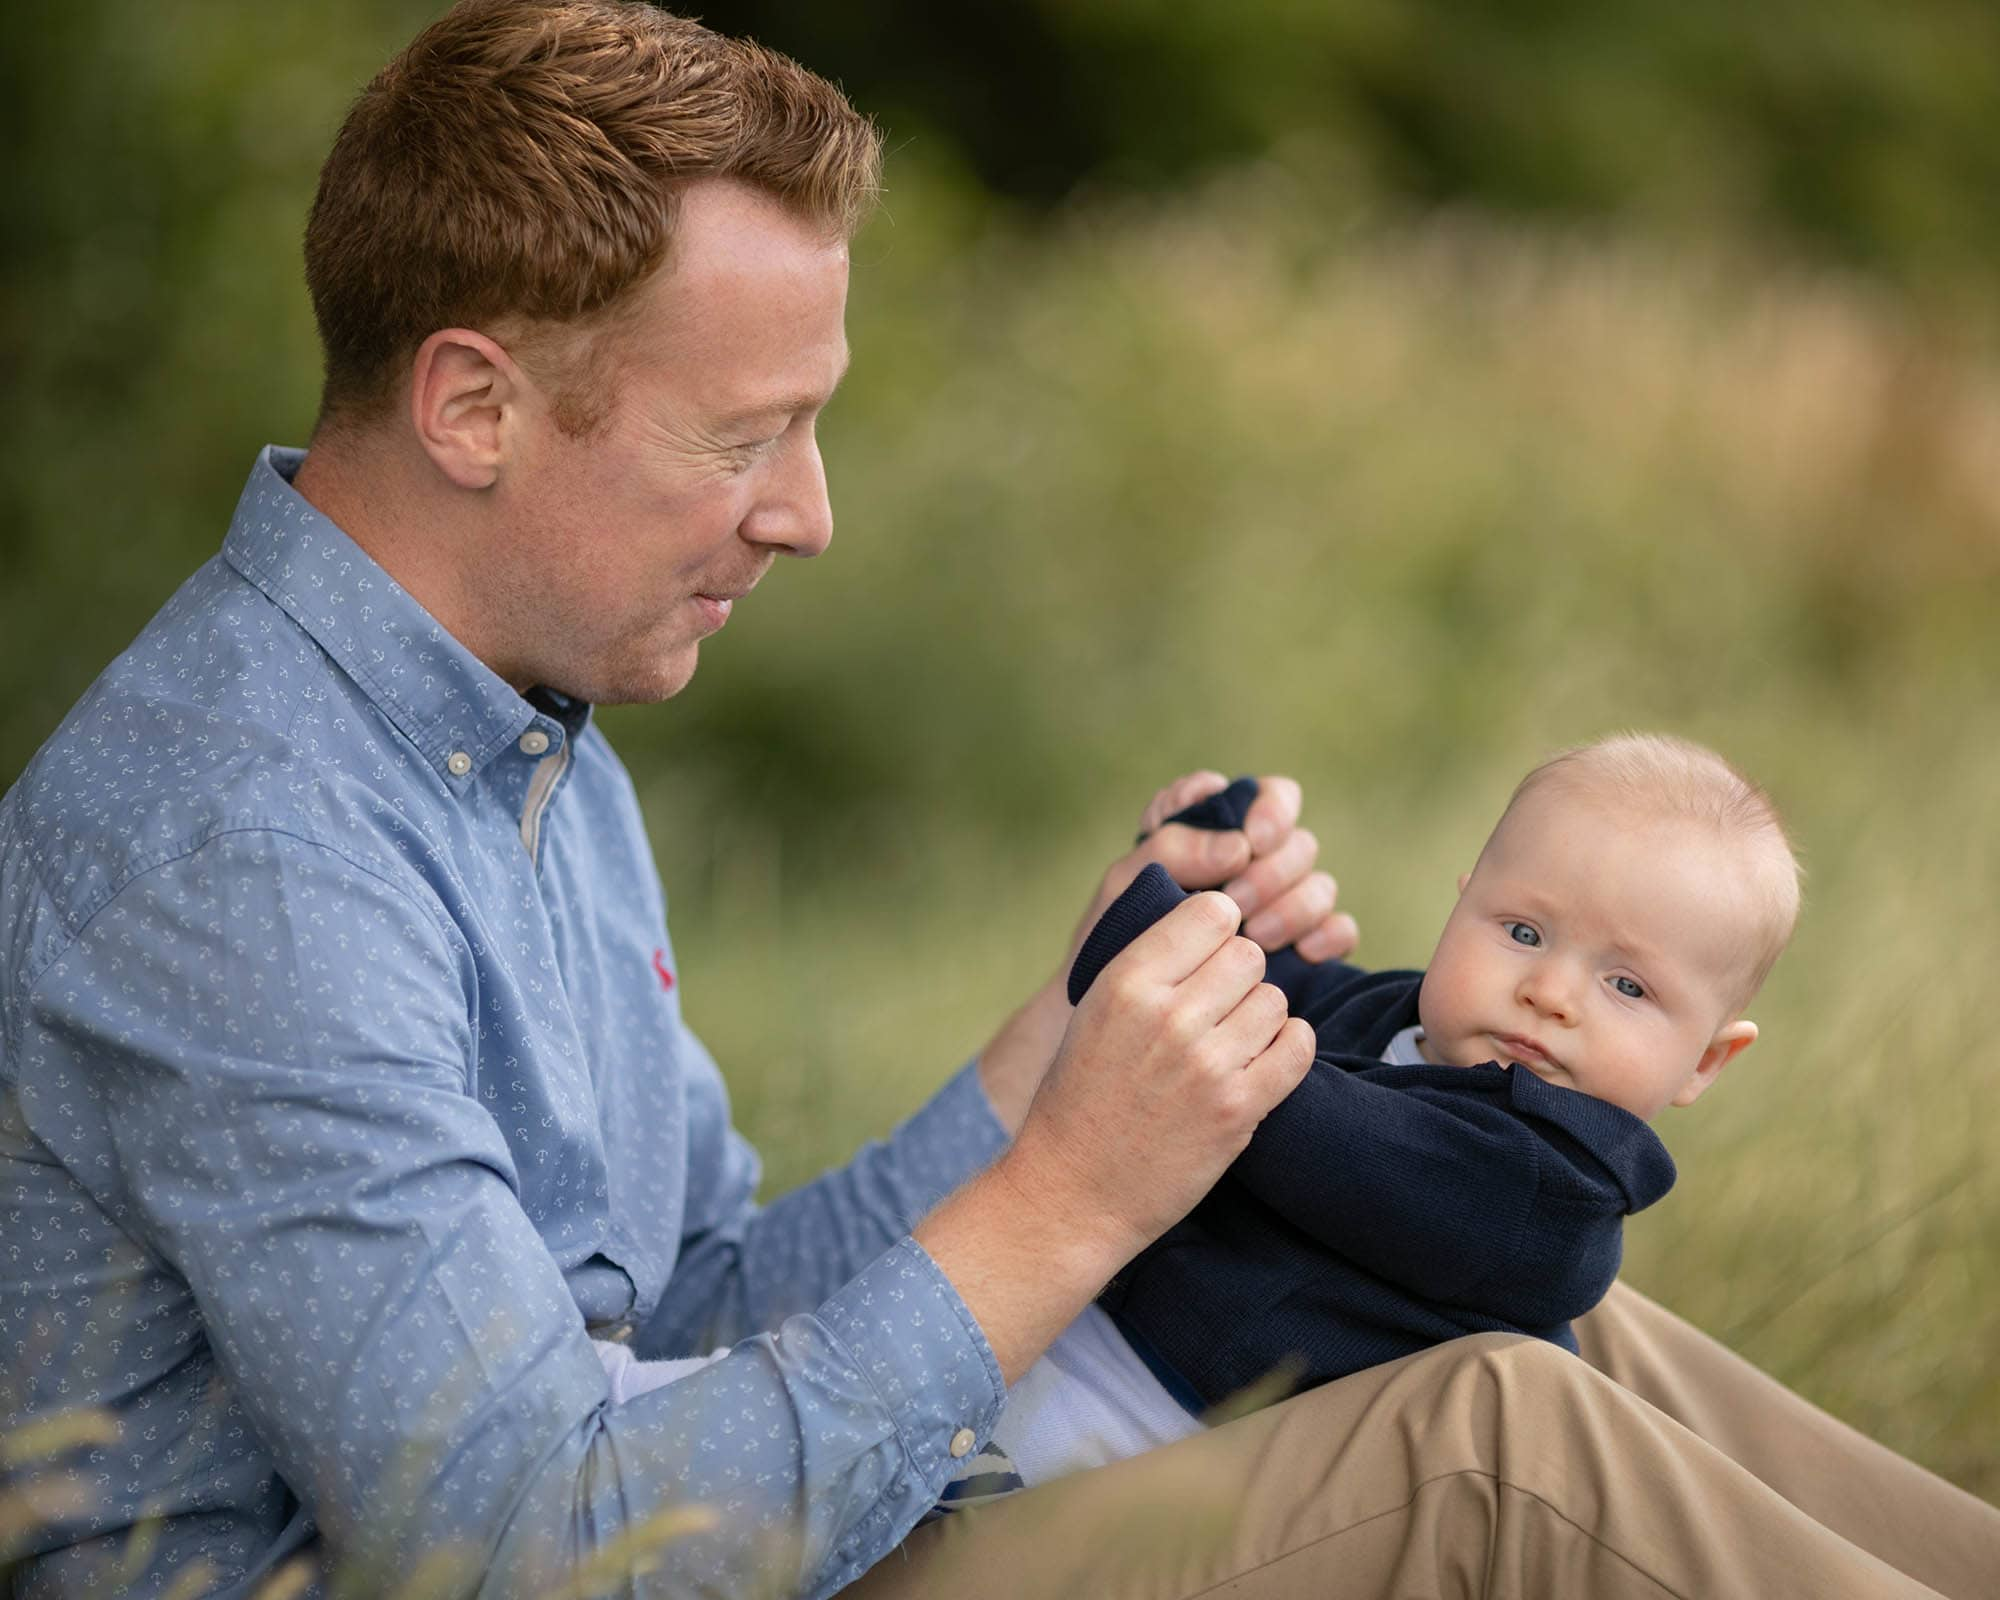 Dad in blue shirt holding baby on his lap. Profile shot. Image taken in Glasgow park at family photography session